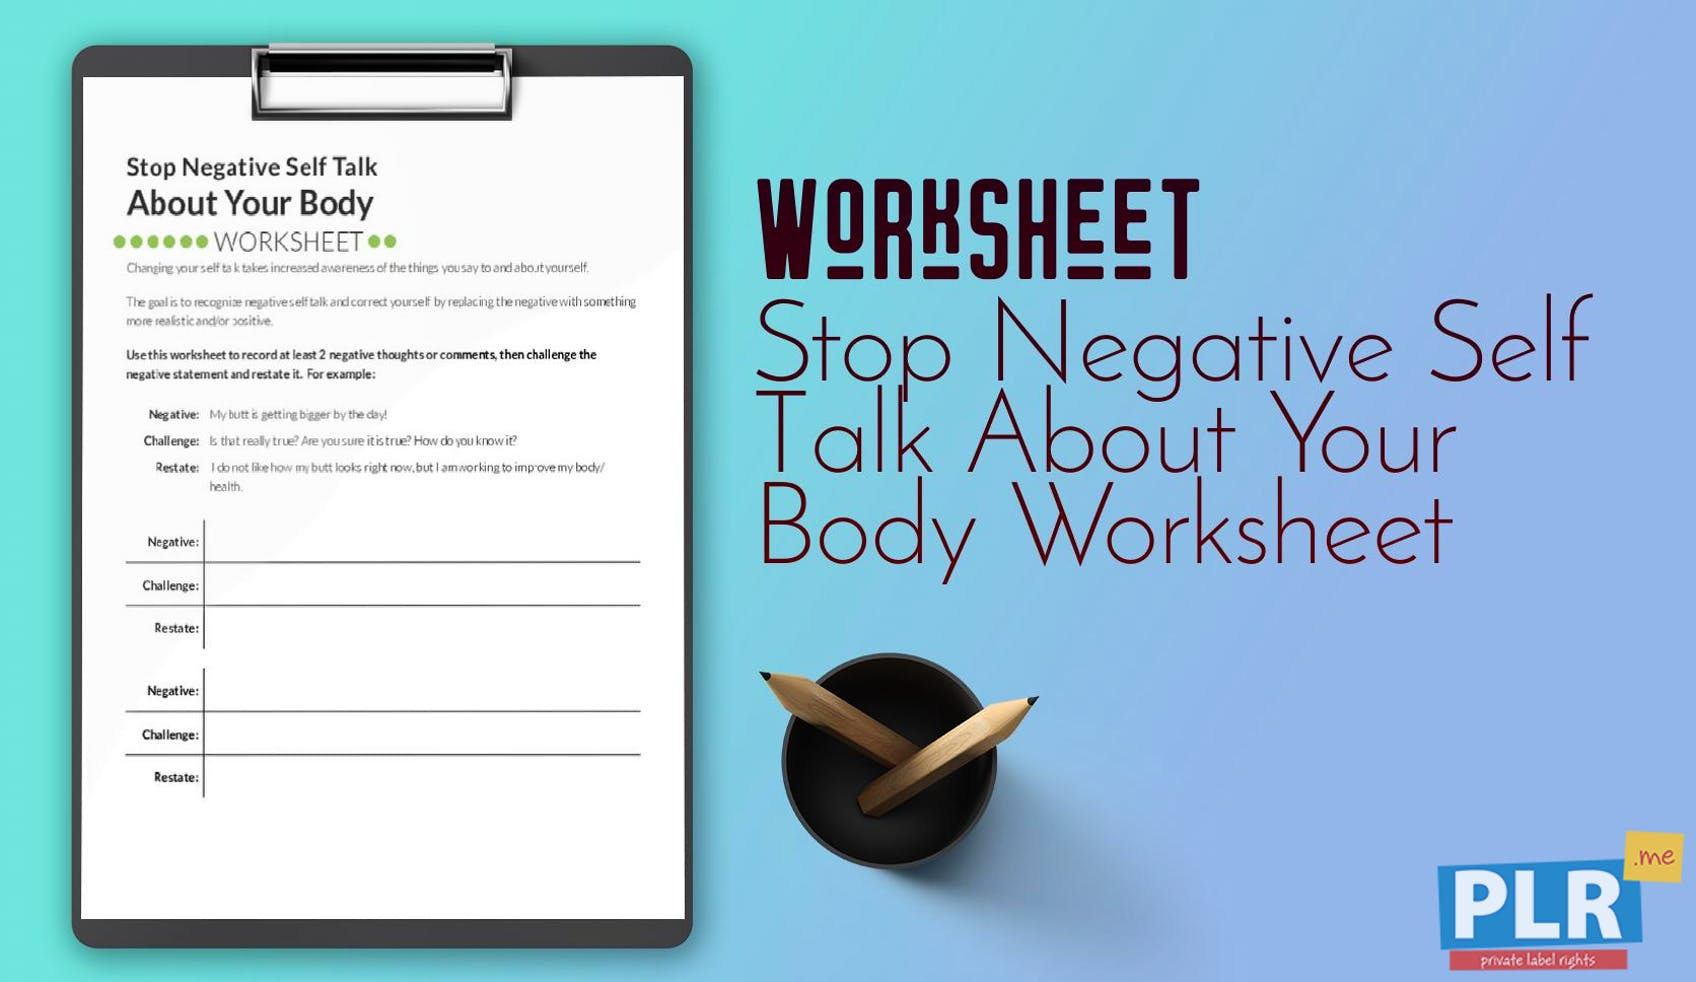 PLR Worksheets - Stop Negative Self Talk About Your Body Worksheet ...